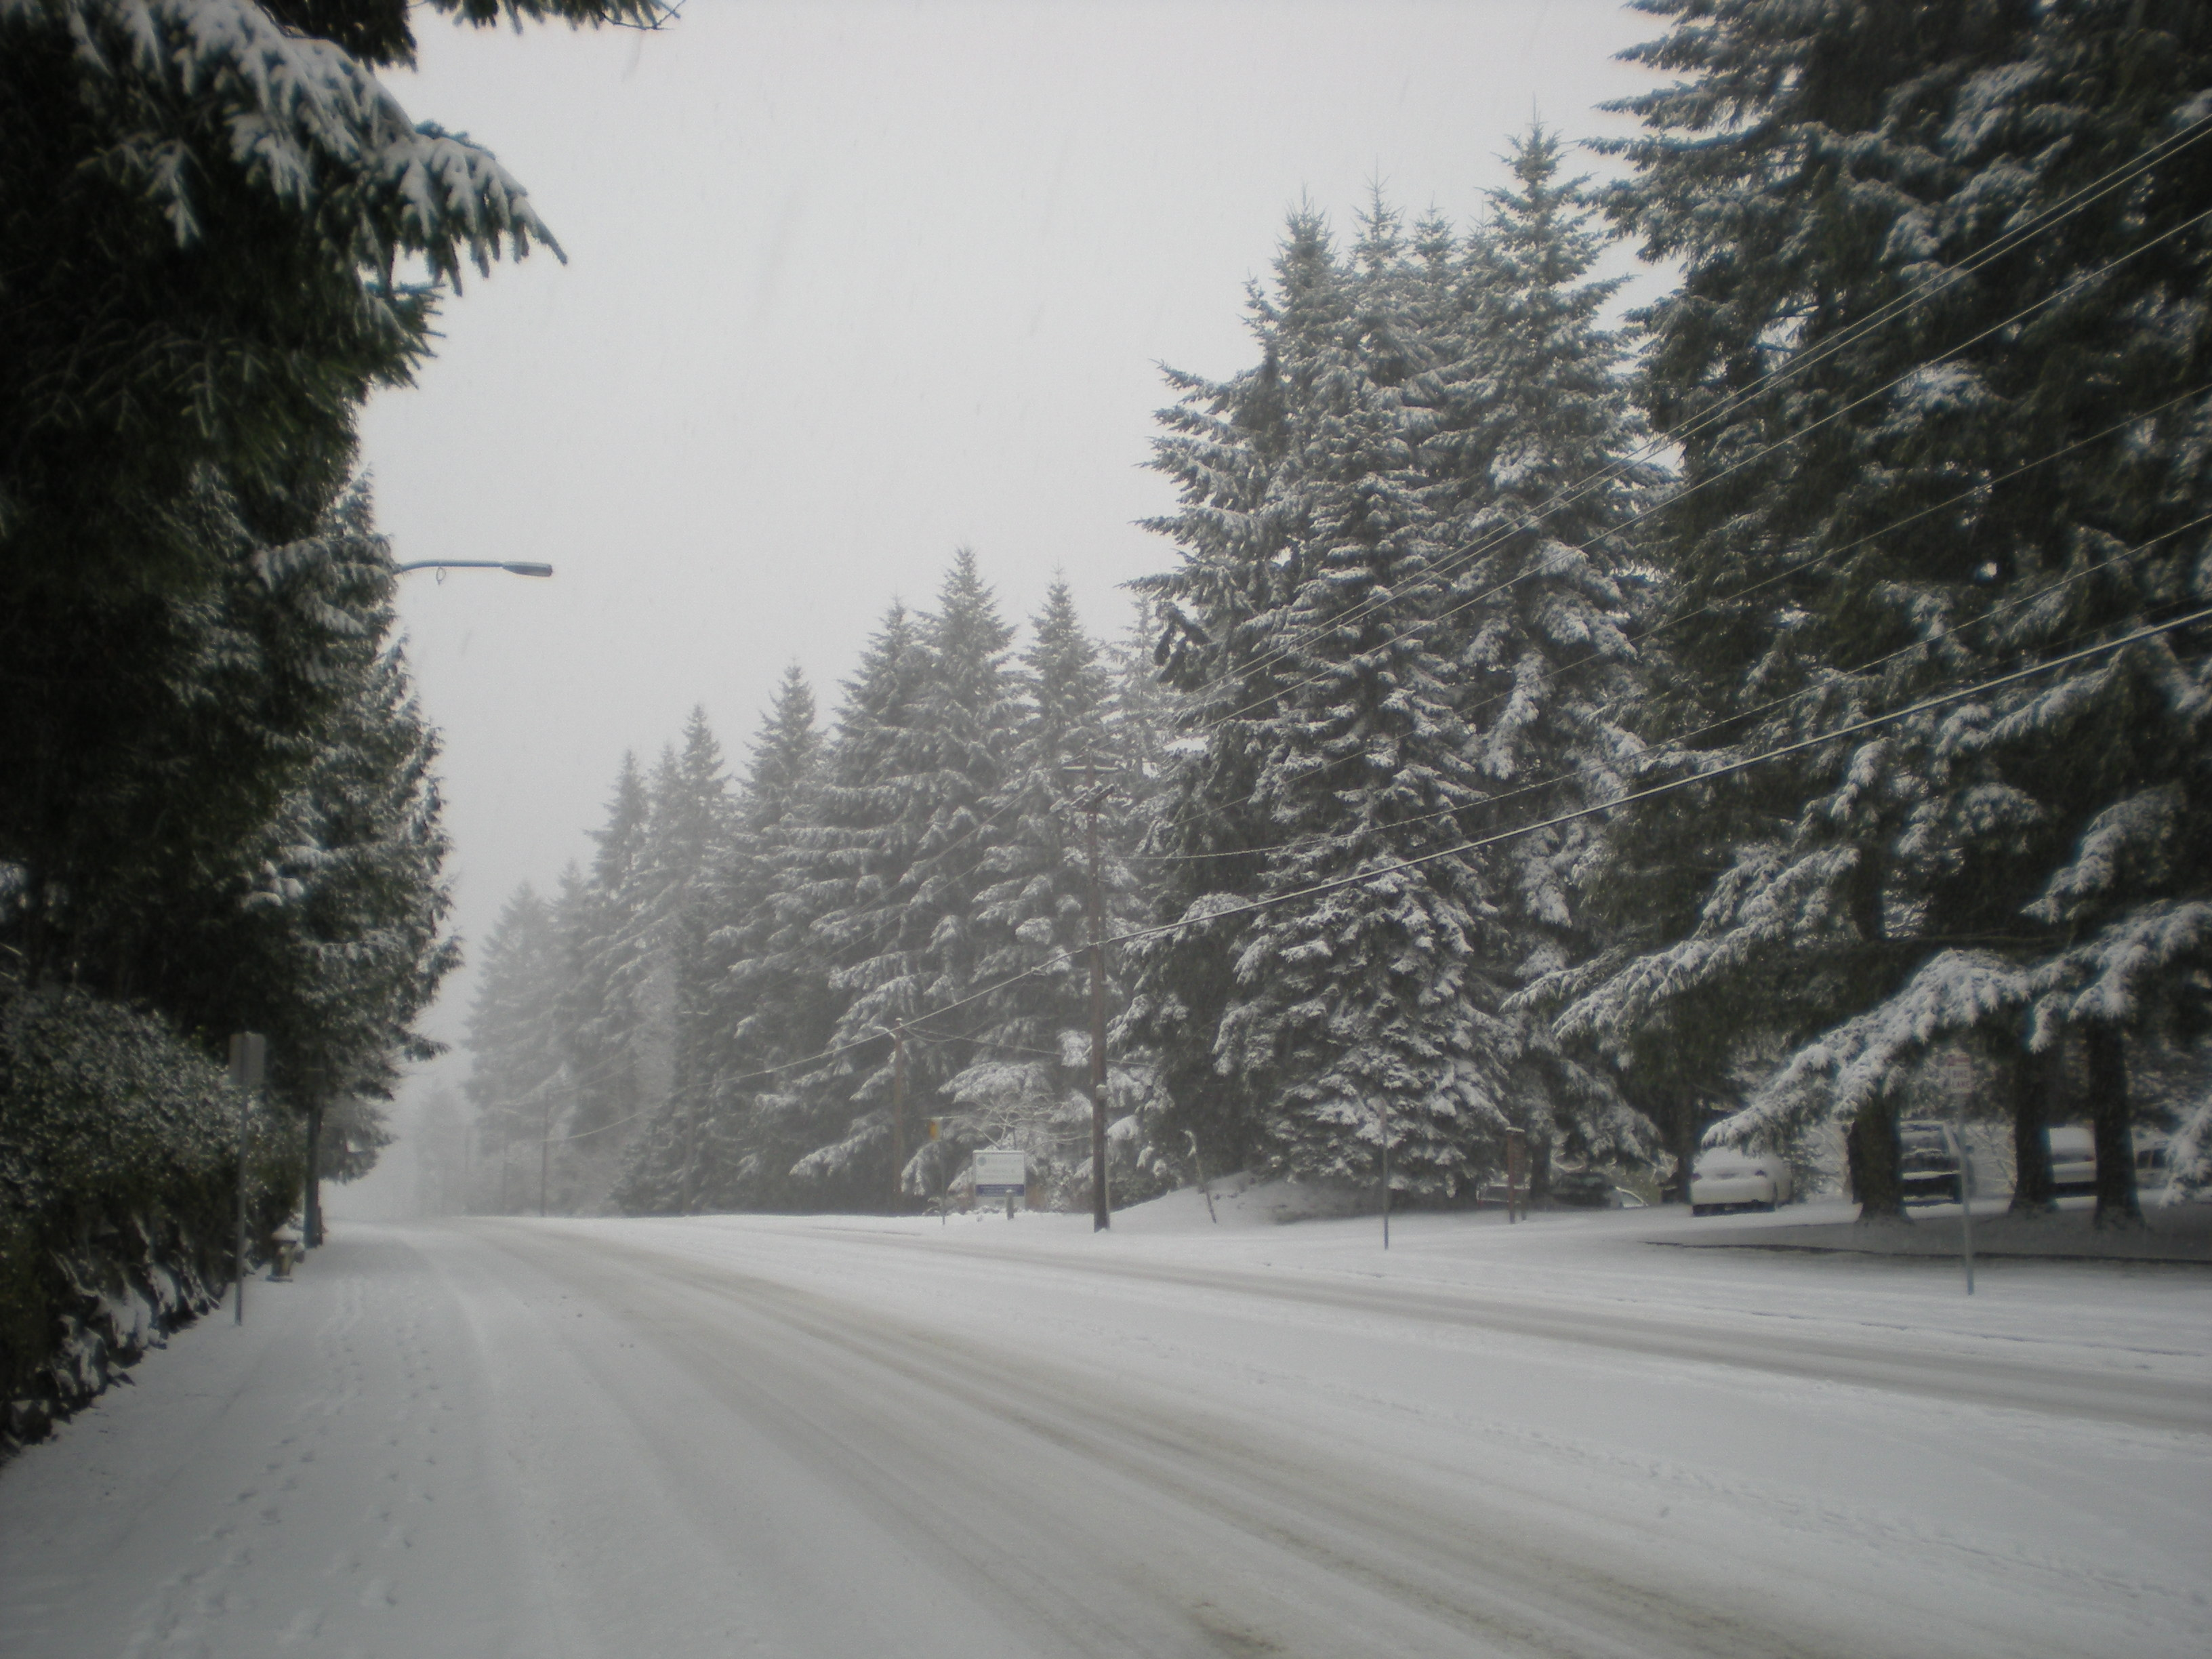 Looking Back At Snows Of December And >> The Mother Of All Convergence Zones Seattle Weather Blog